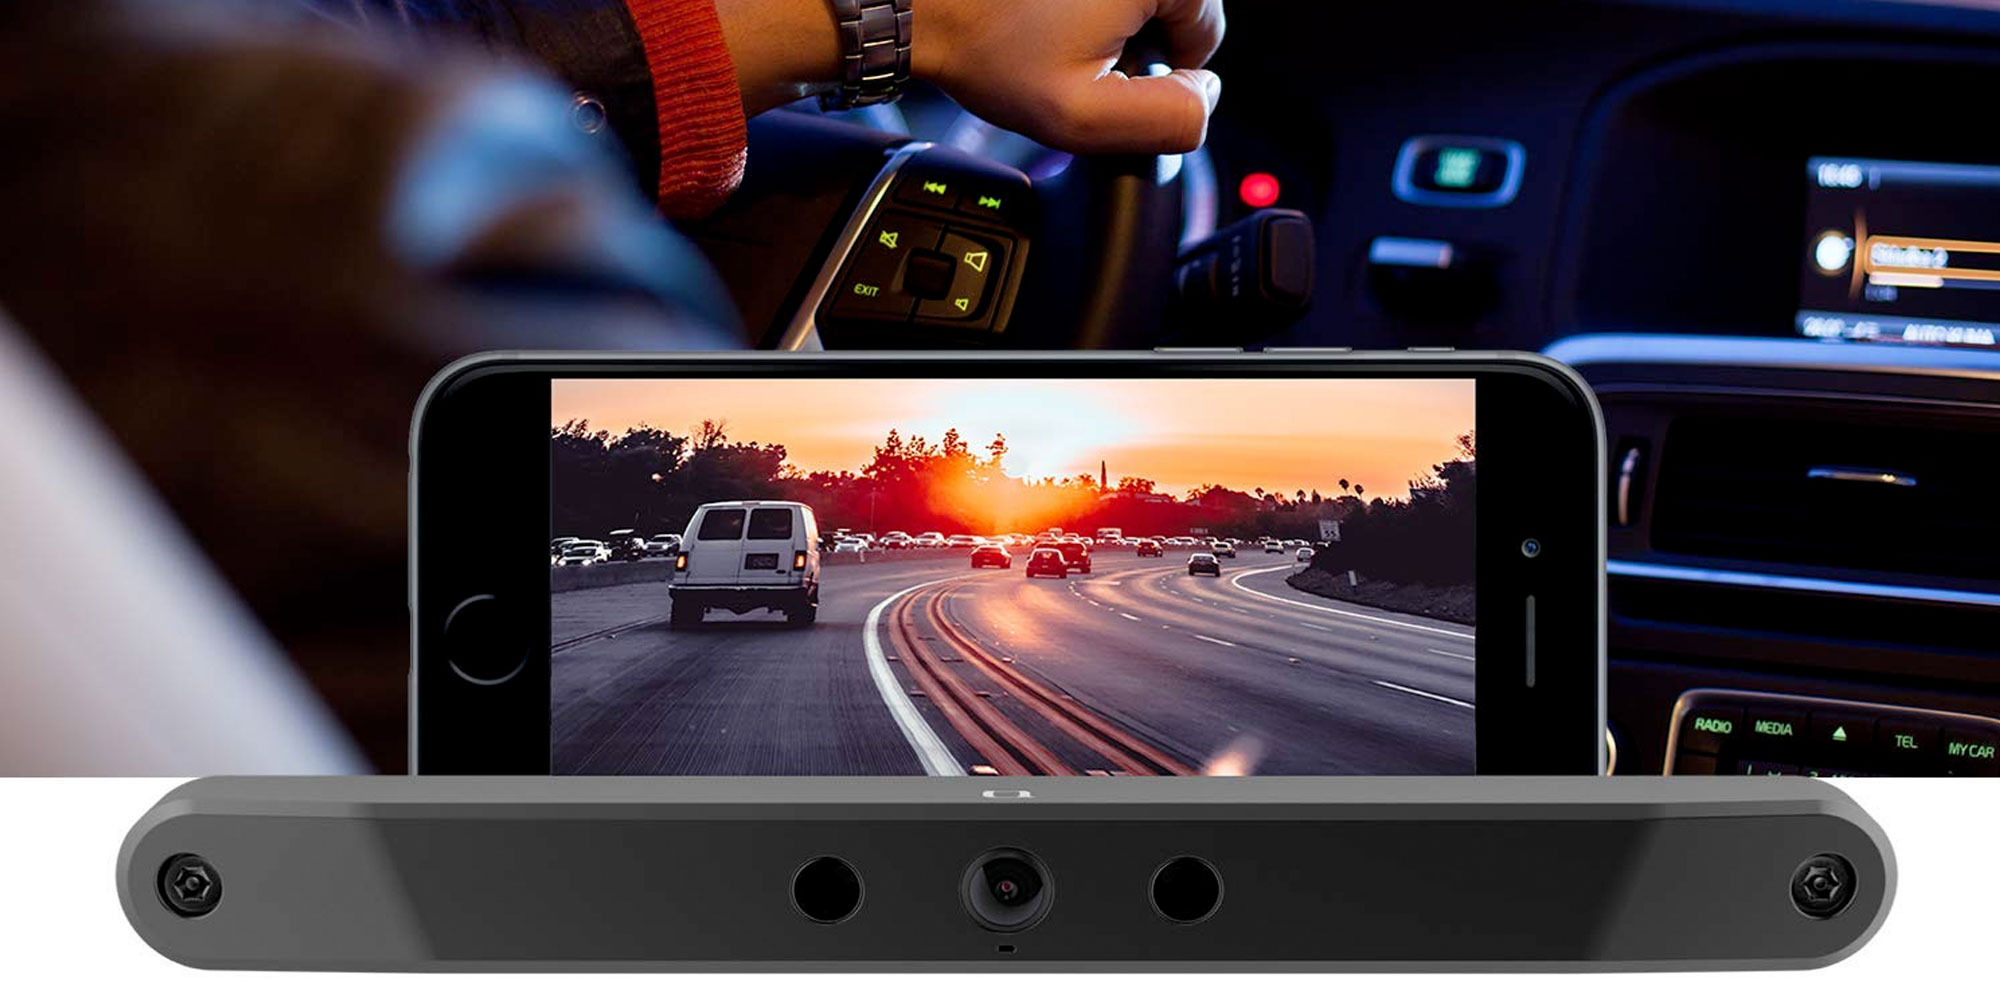 See behind you & learn to park in reverse perfectly w/ this wireless backup camera for $99 (Reg. $120)